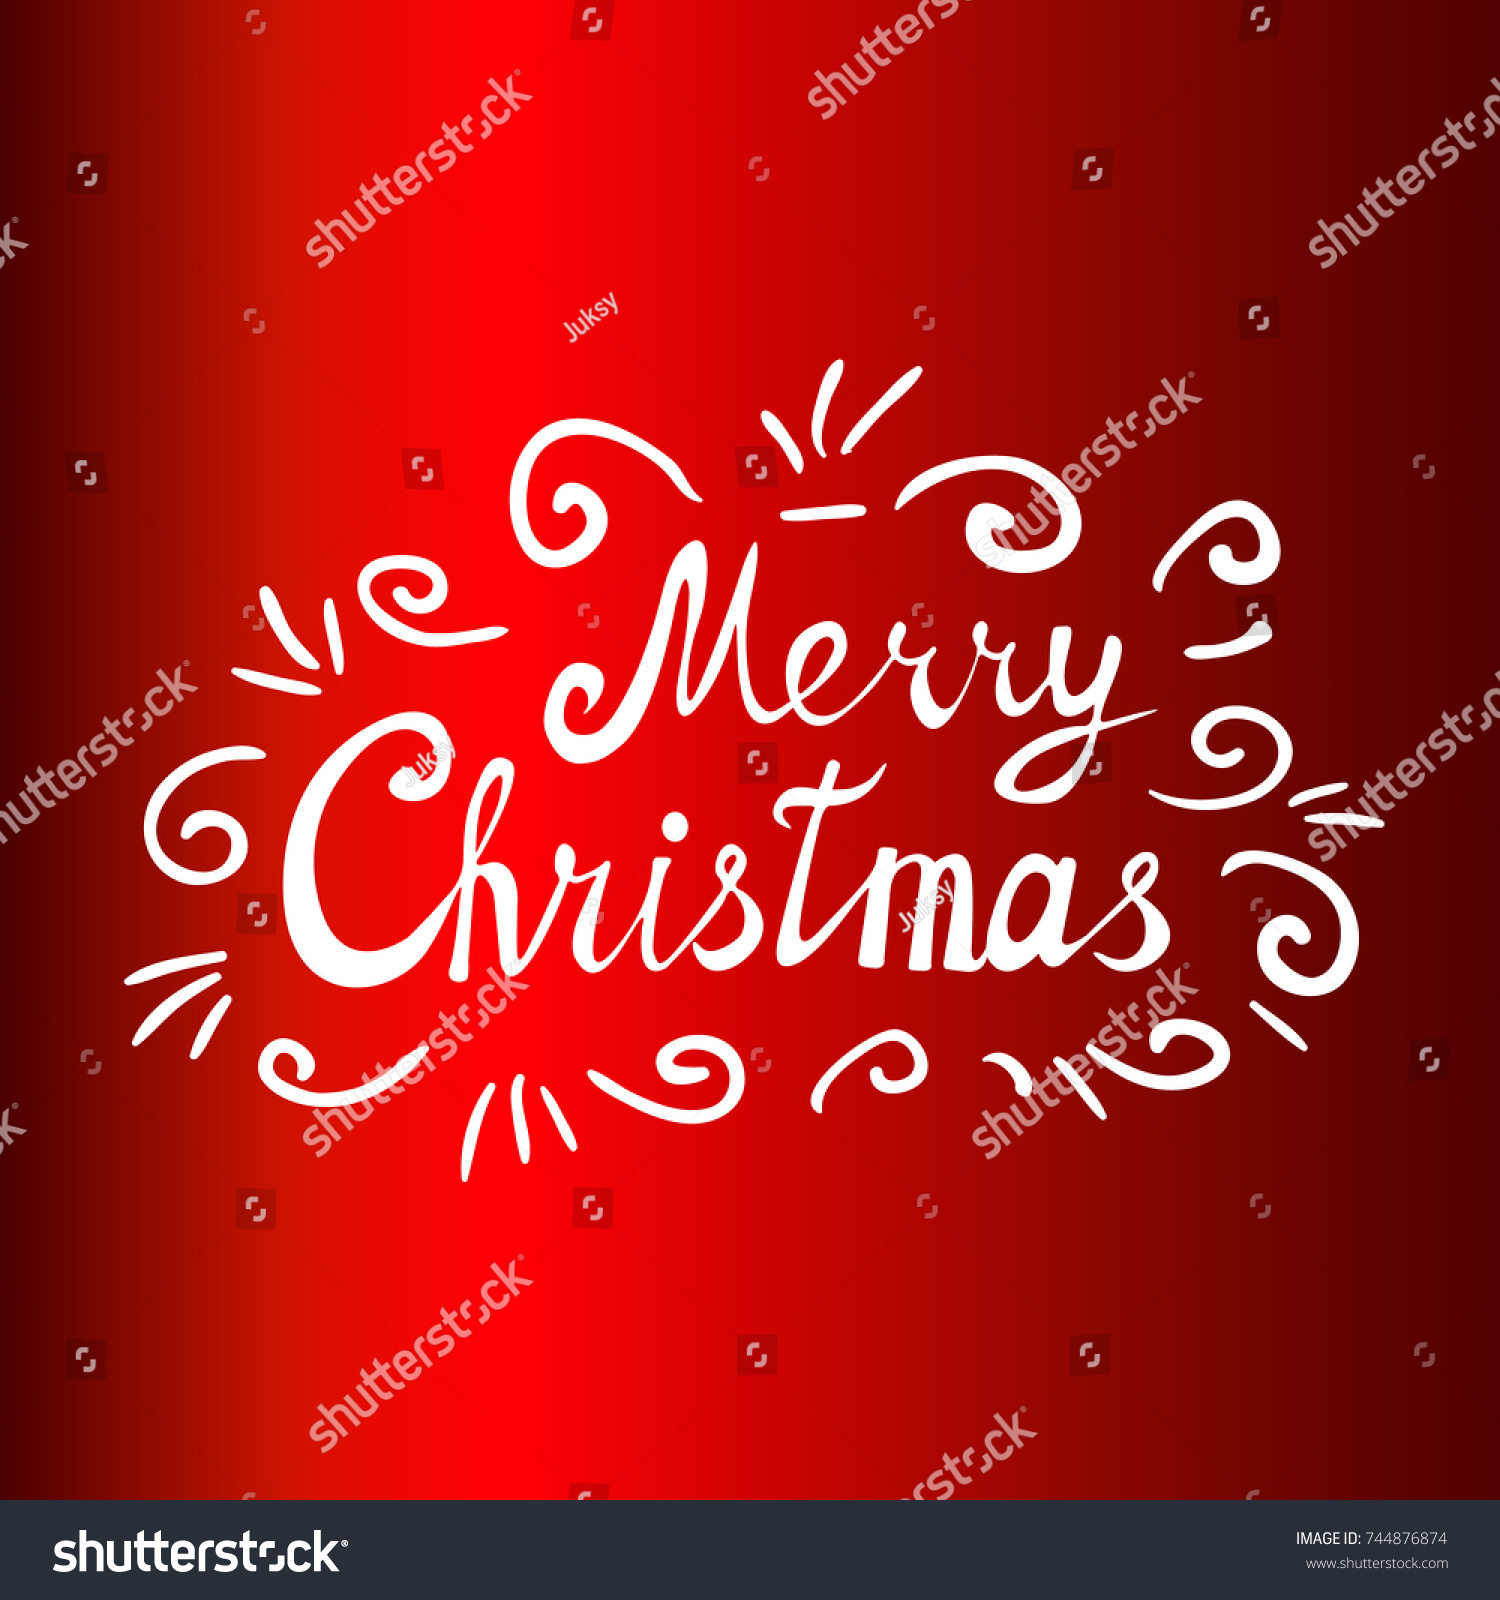 Merry Christmas Card Text On Red Stock Vector 744876874